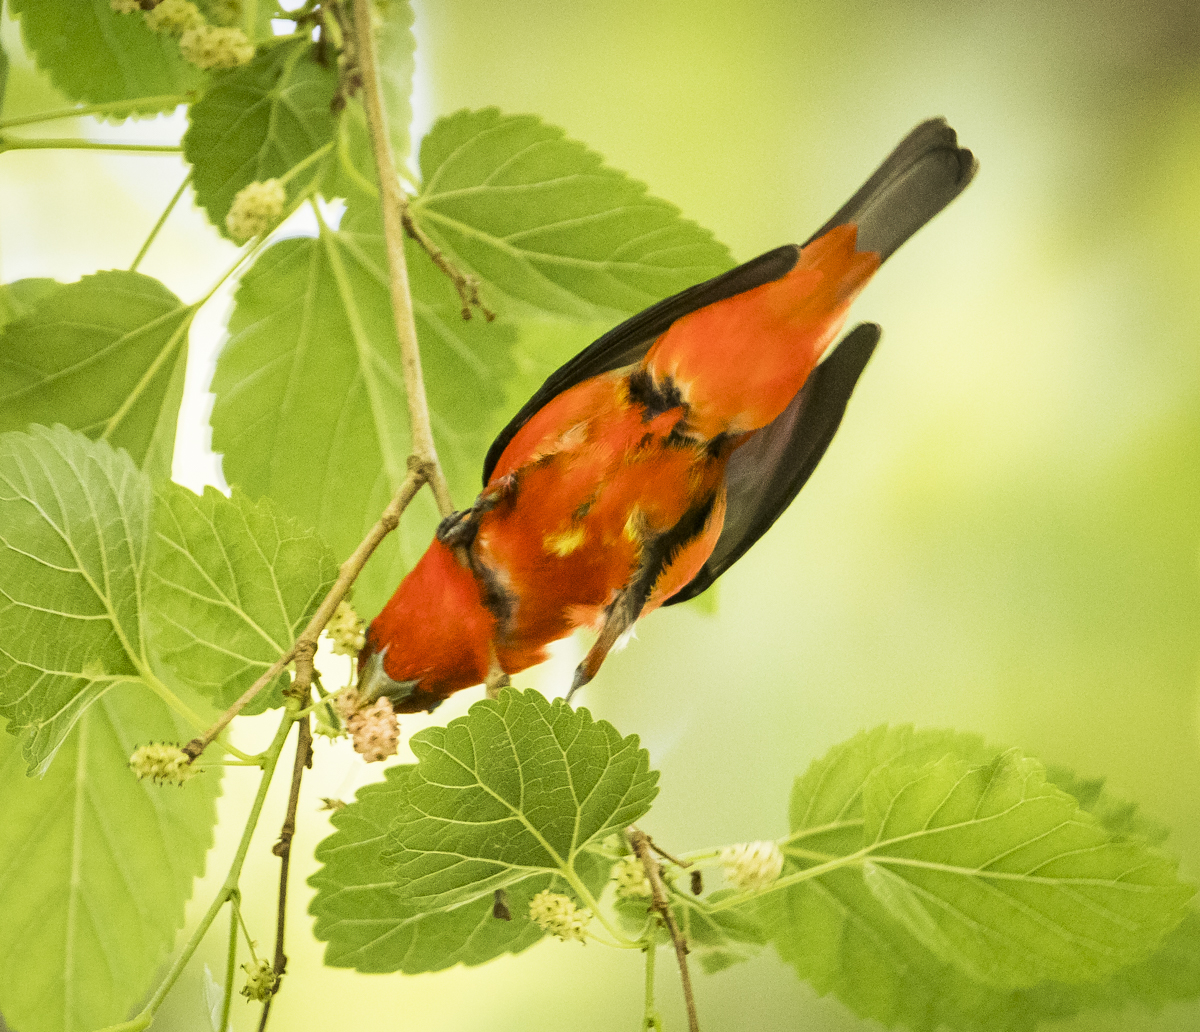 Scarlet tanager getting berry